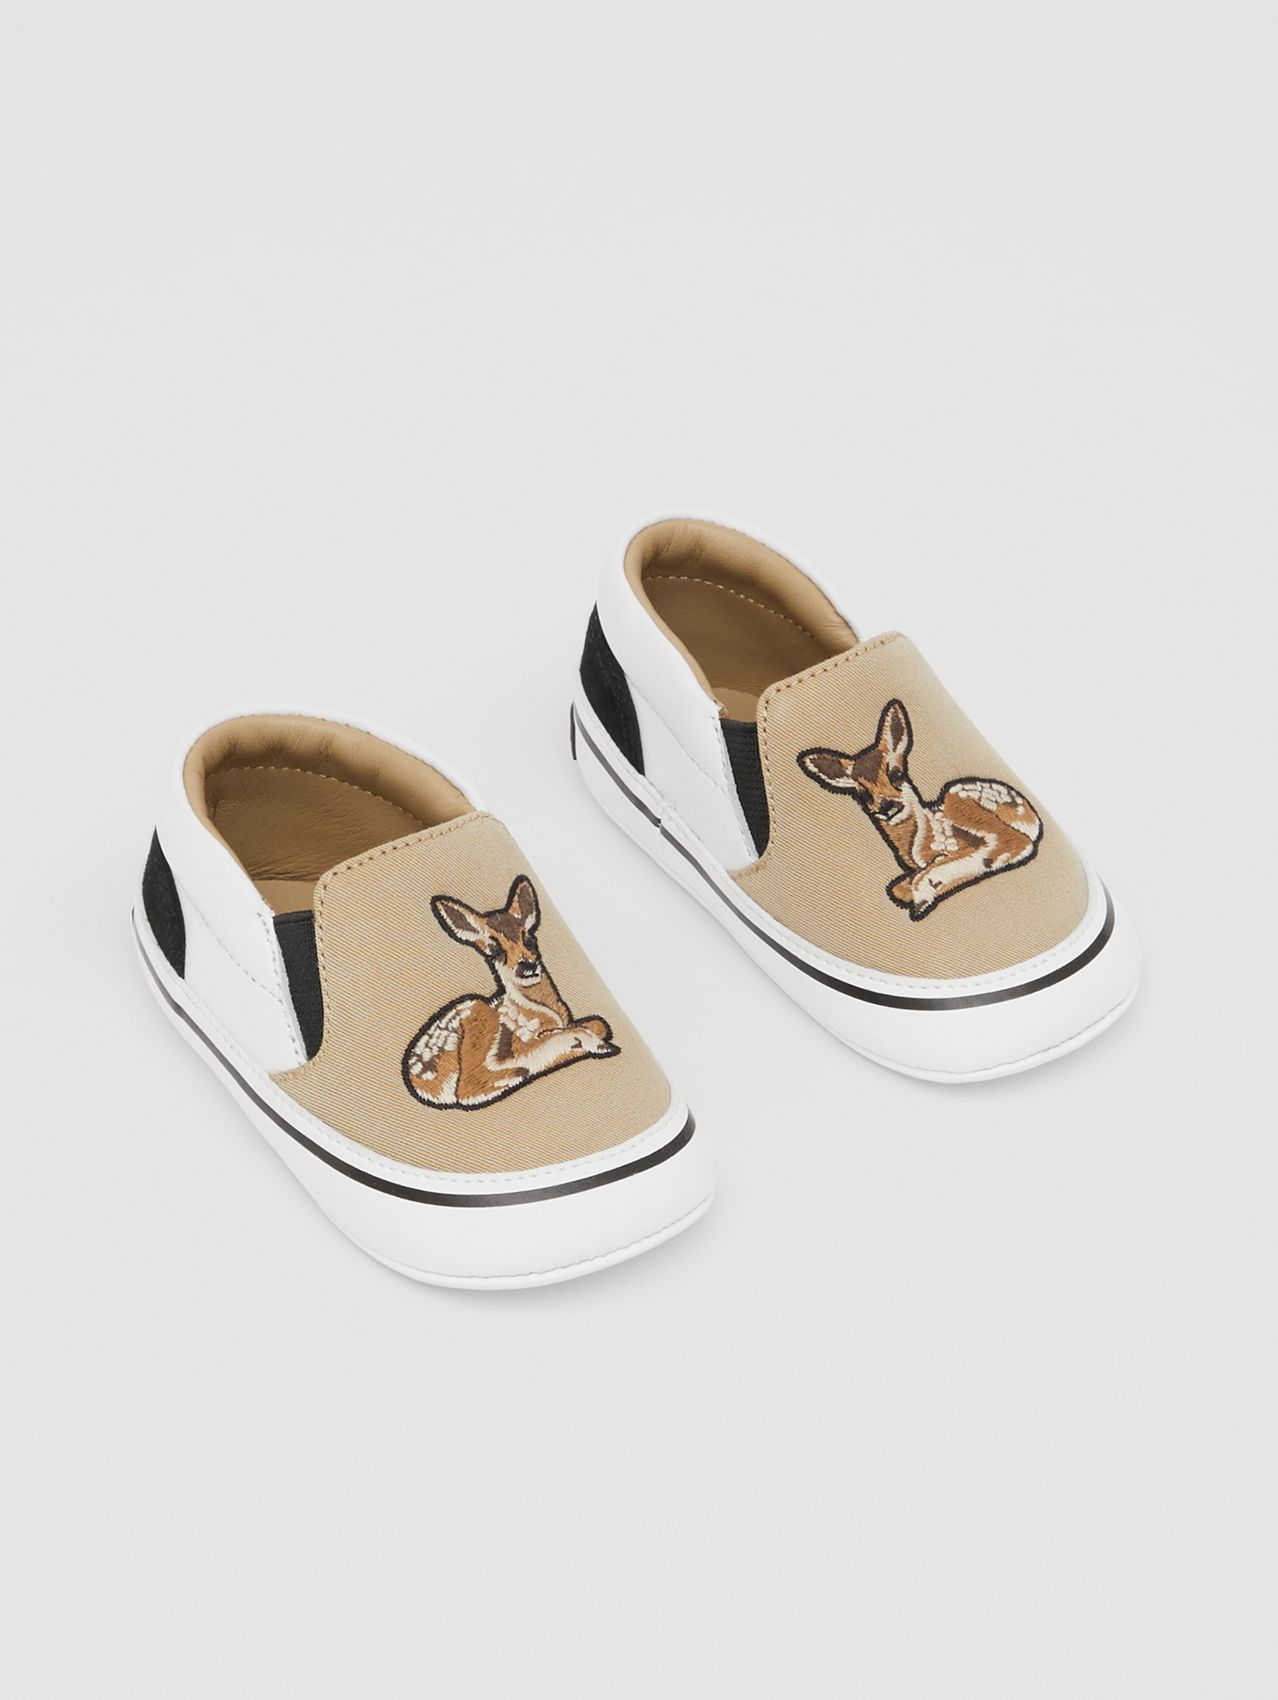 Deer Motif Slip-on Shoes in Honey